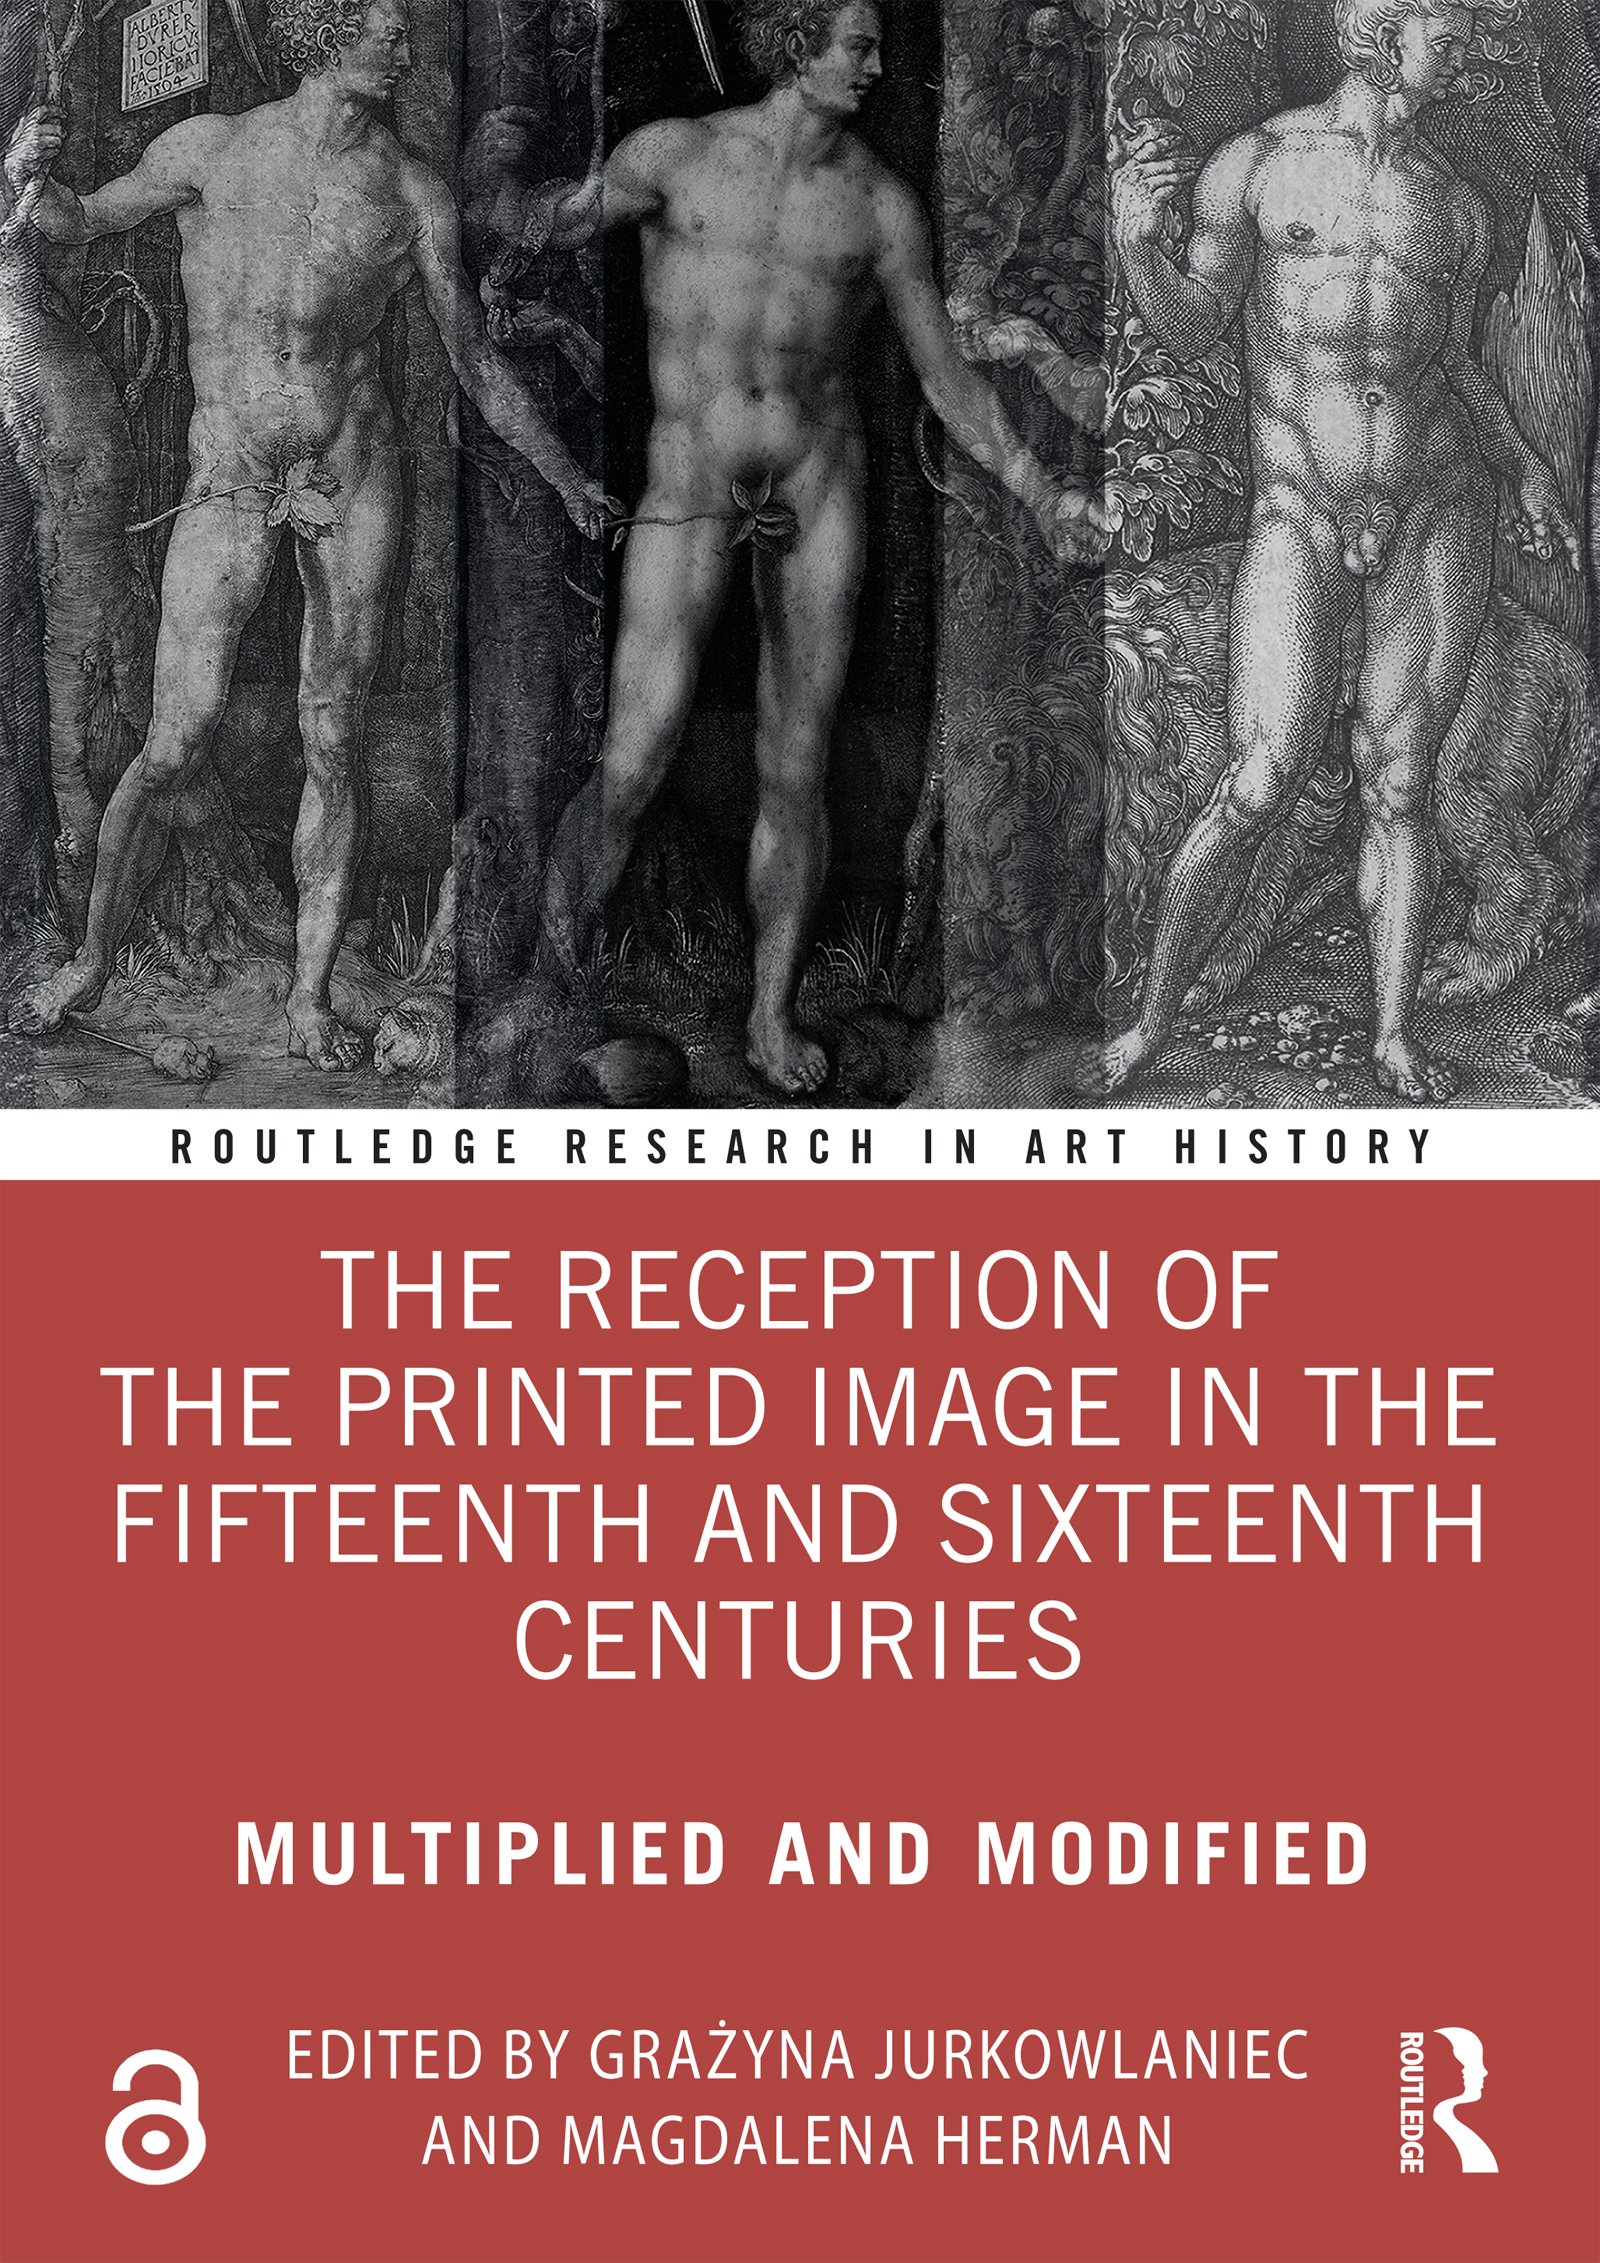 The Reception of the Printed Image in the Fifteenth and Sixteenth Centuries